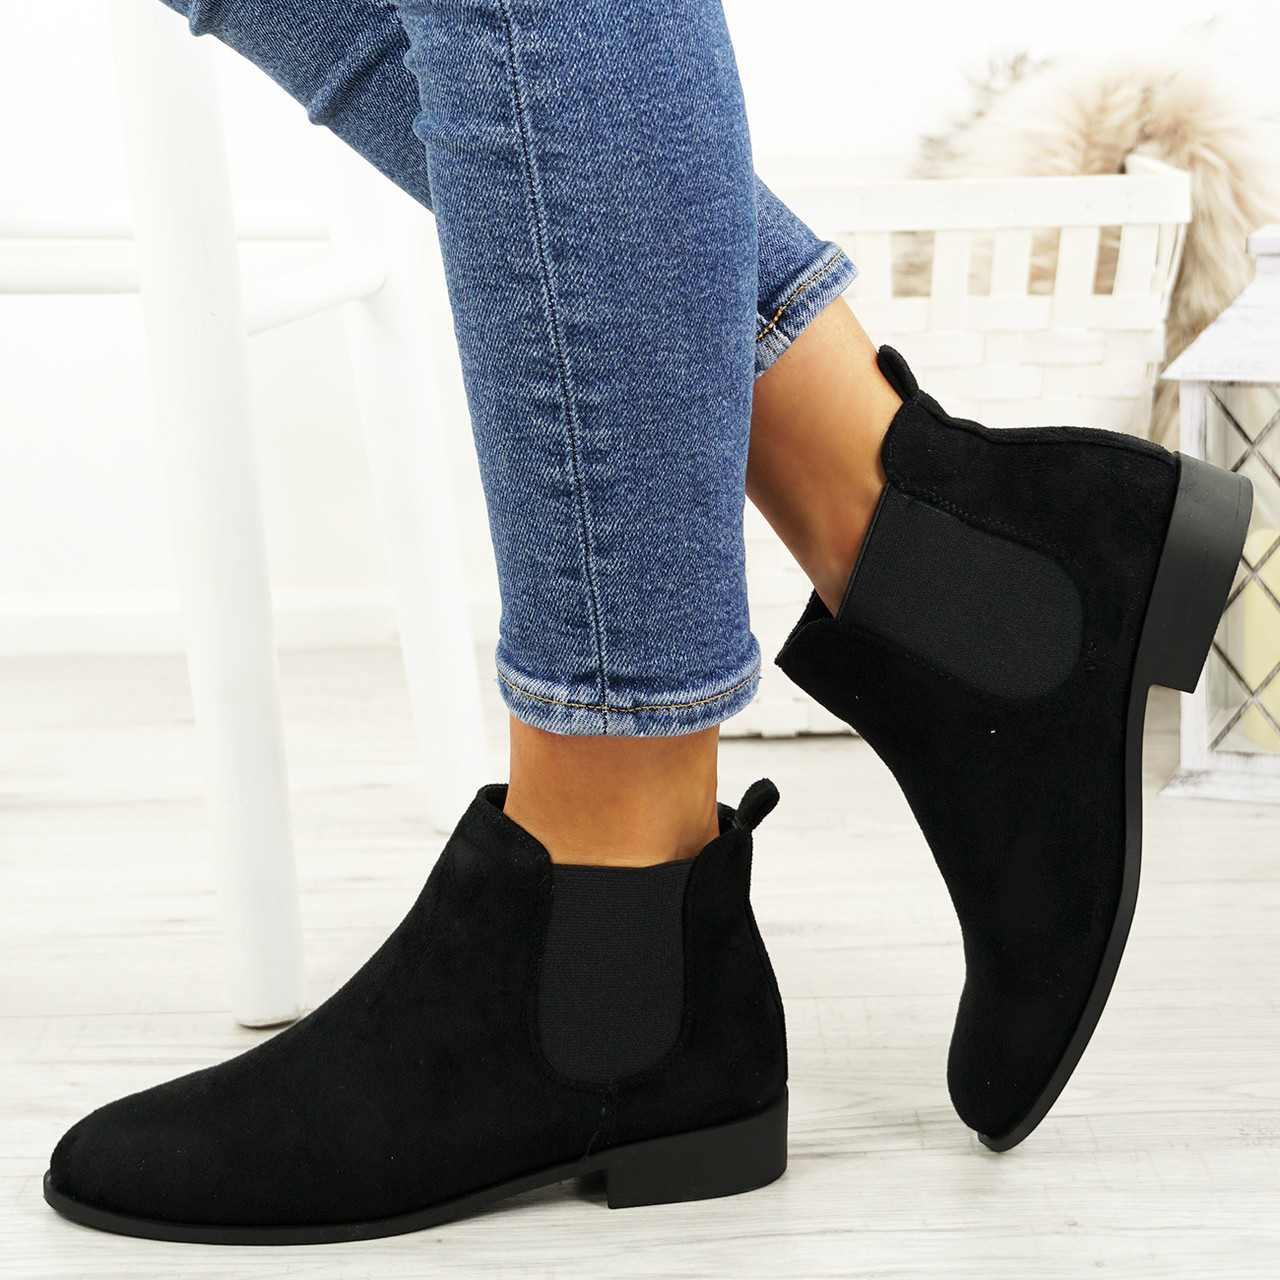 New Womens Ladies High Block Heel Chelsea Ankle Boots Zip Slip-On Shoes Size